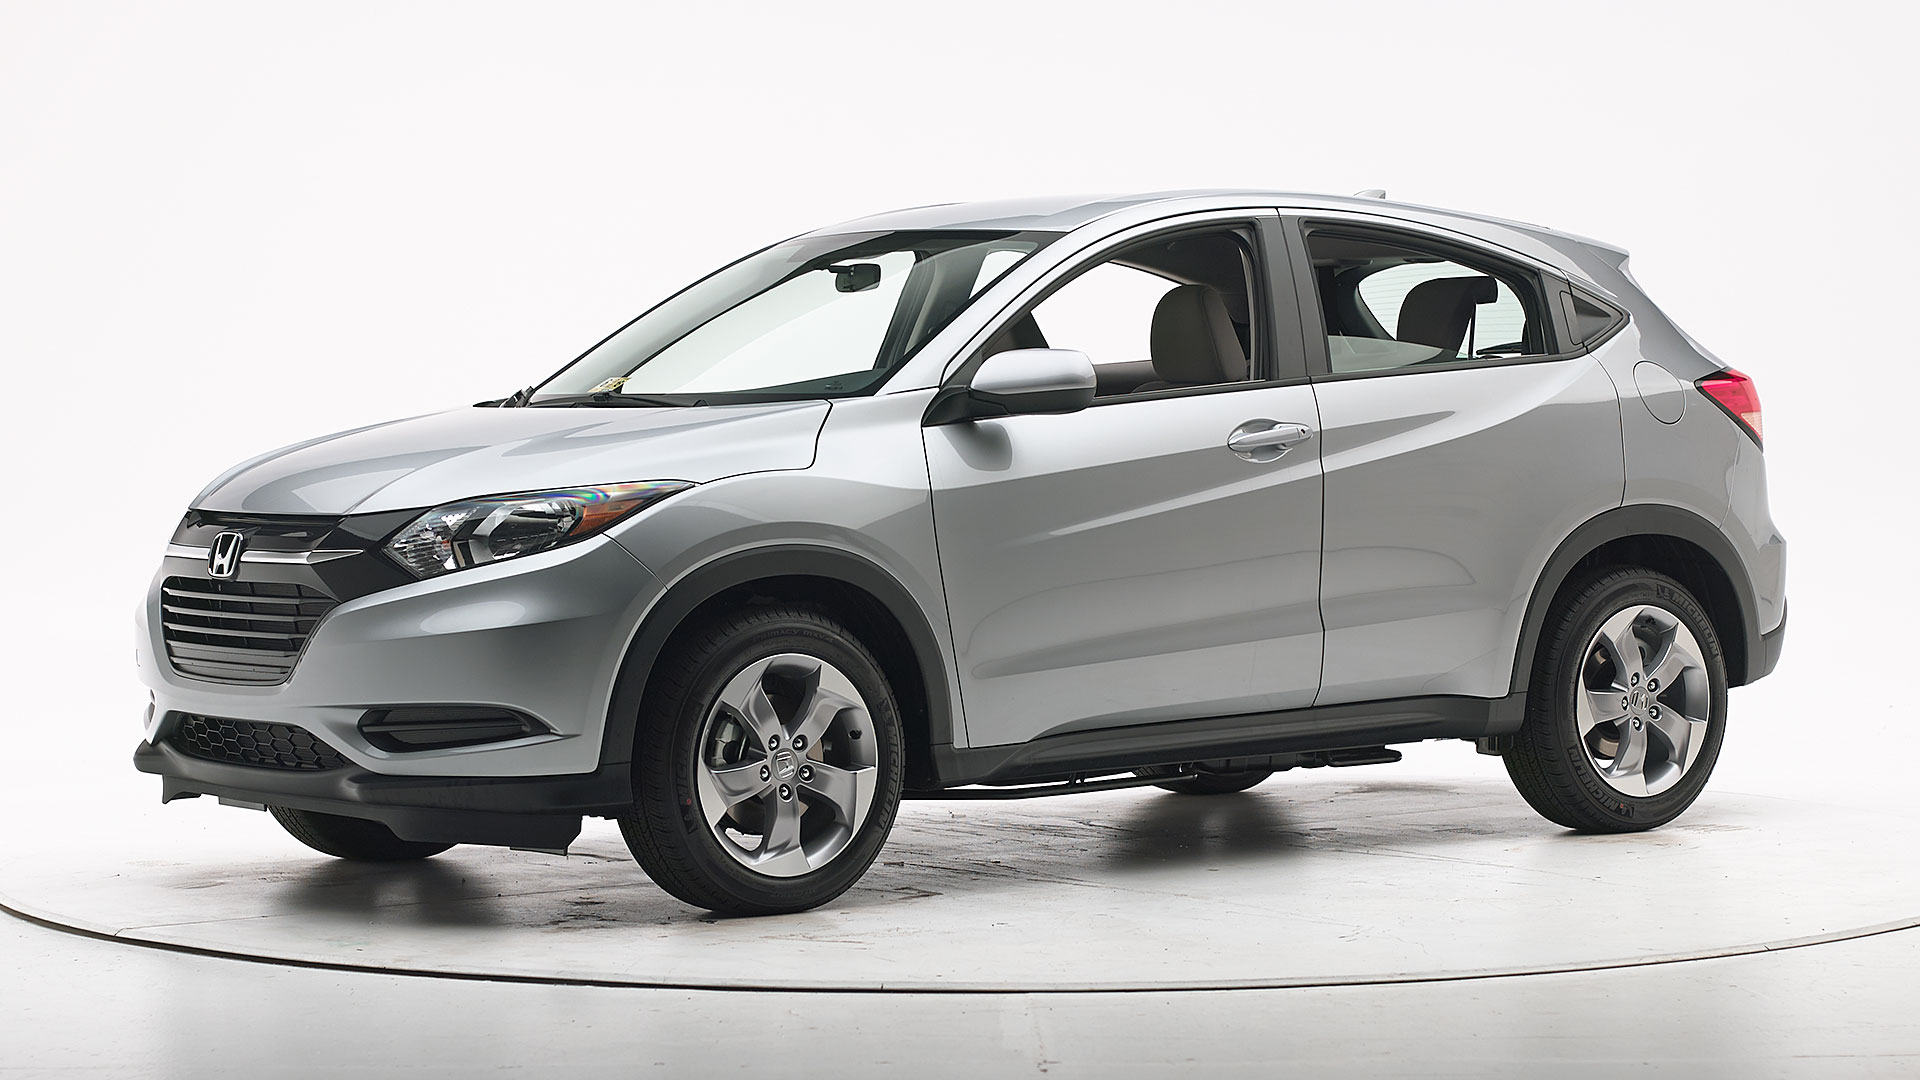 2017 Honda HR-V 4-door SUV